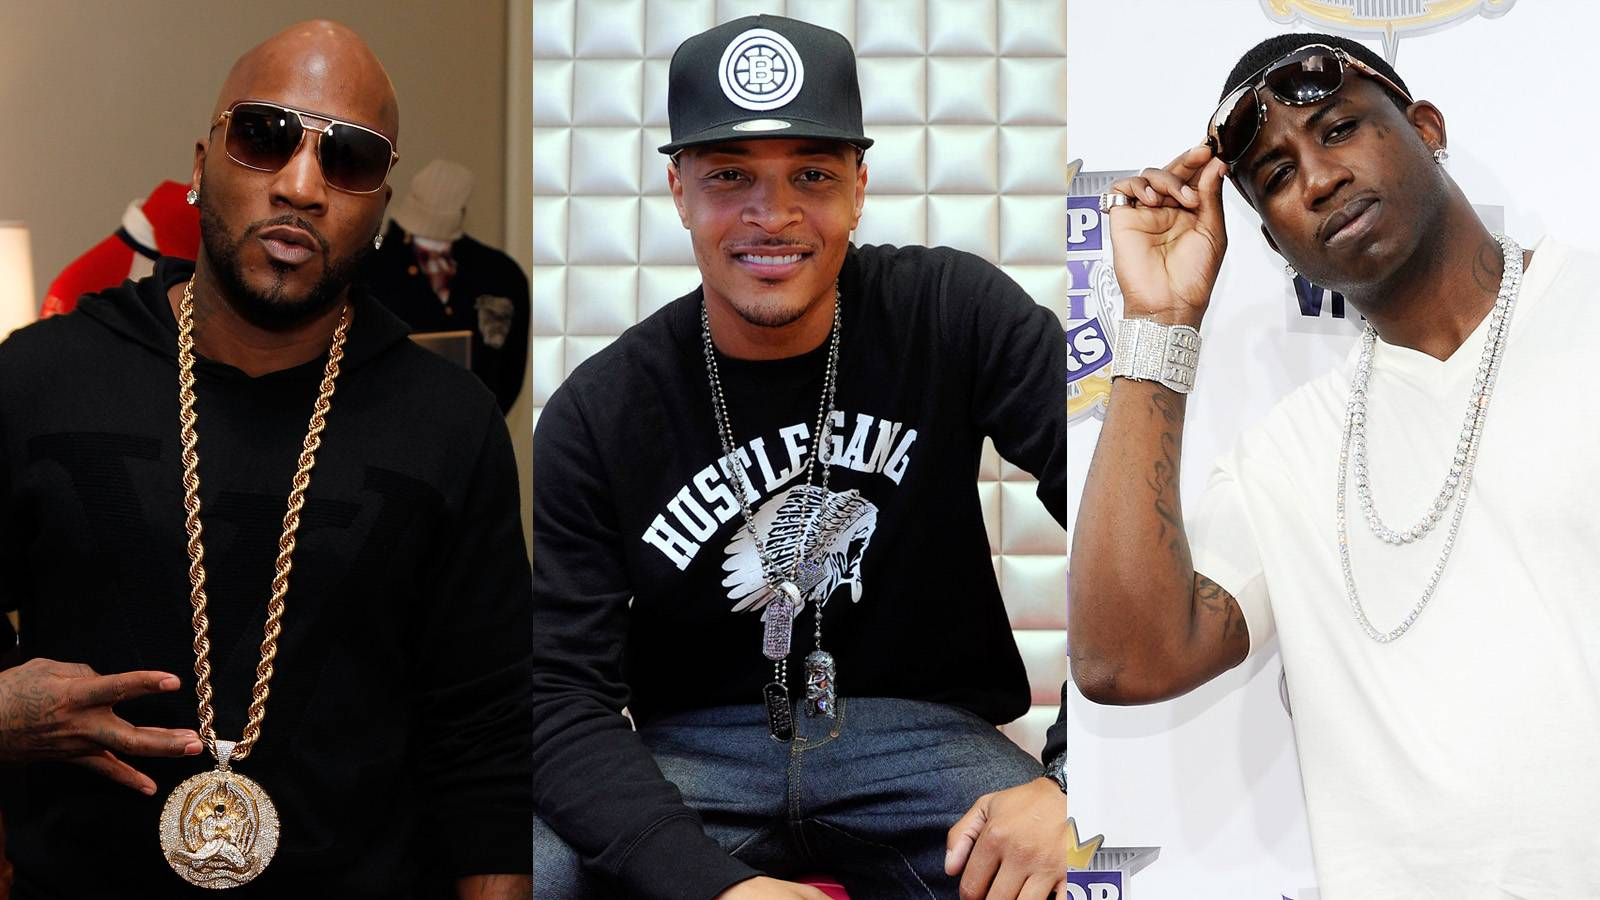 """T.I. - Tip played it cool when asked about the renewed beef between his frequent collaborator Young Jeezy and Gucci Mane. """"I got my mind set on a big sack with a lot of money in it,"""" T.I. said. """"Anything not of that understanding and of that nature, I don't really see it. So I don't really know what you're asking me about it.""""  (Photos from left: Ben Rose/WireImage for AKOO Clothing, John Ricard / BET, Jemal Countess/Getty Images)"""